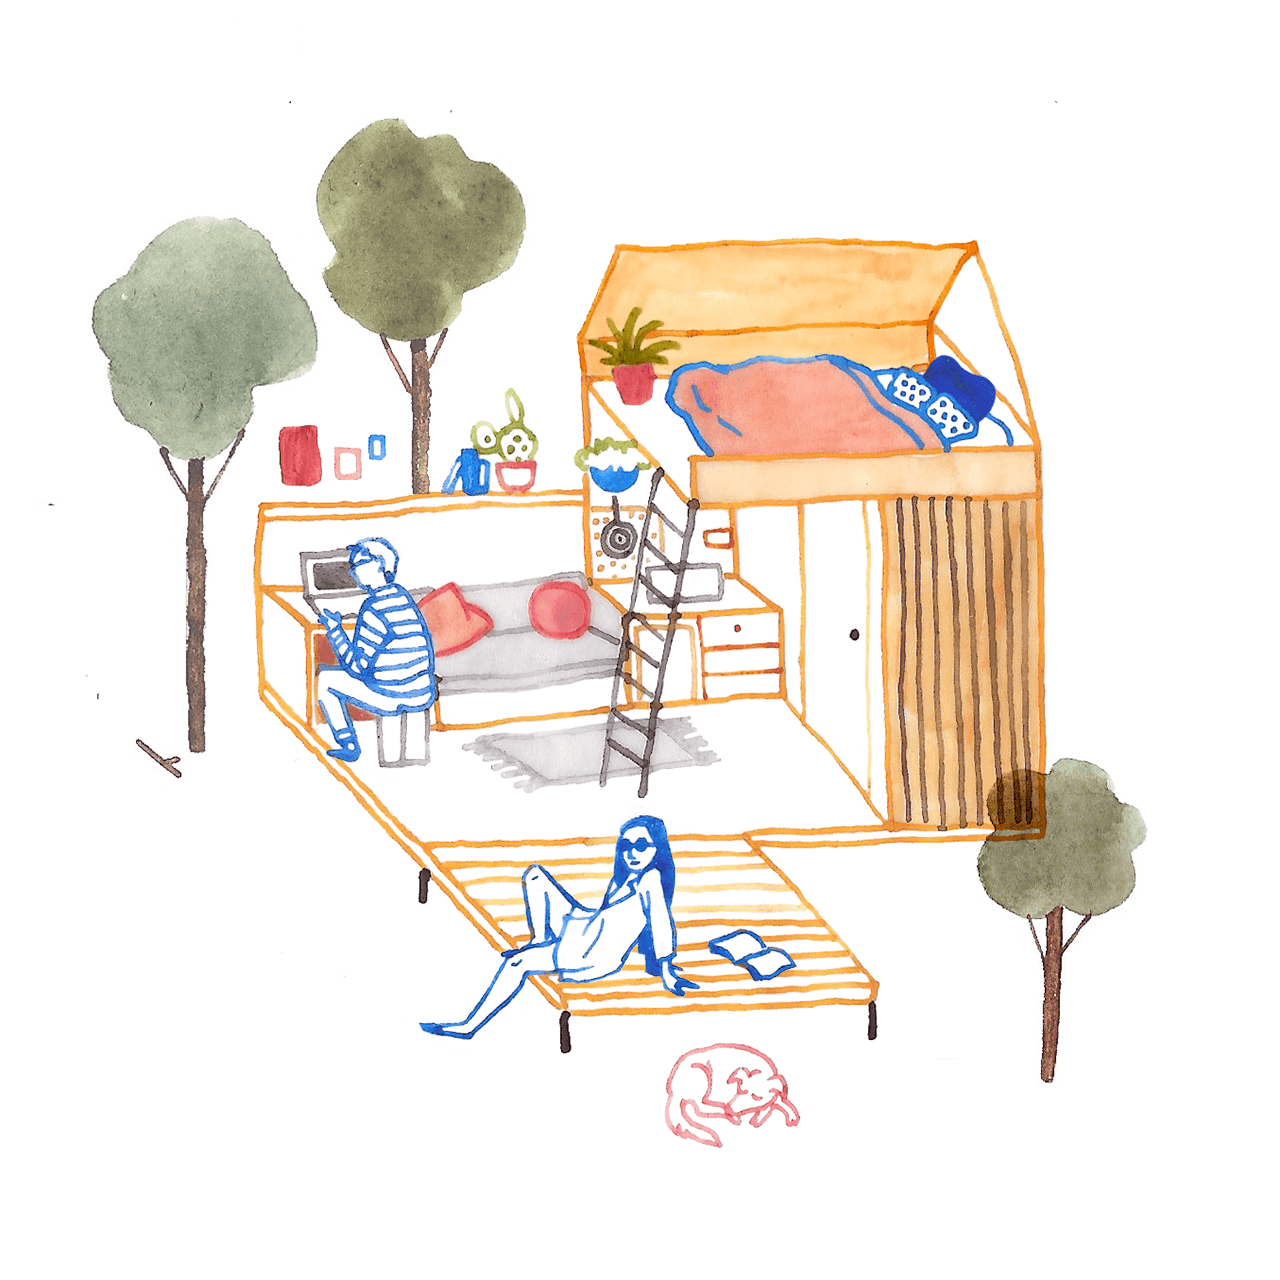 Illustration of people working in a cabin